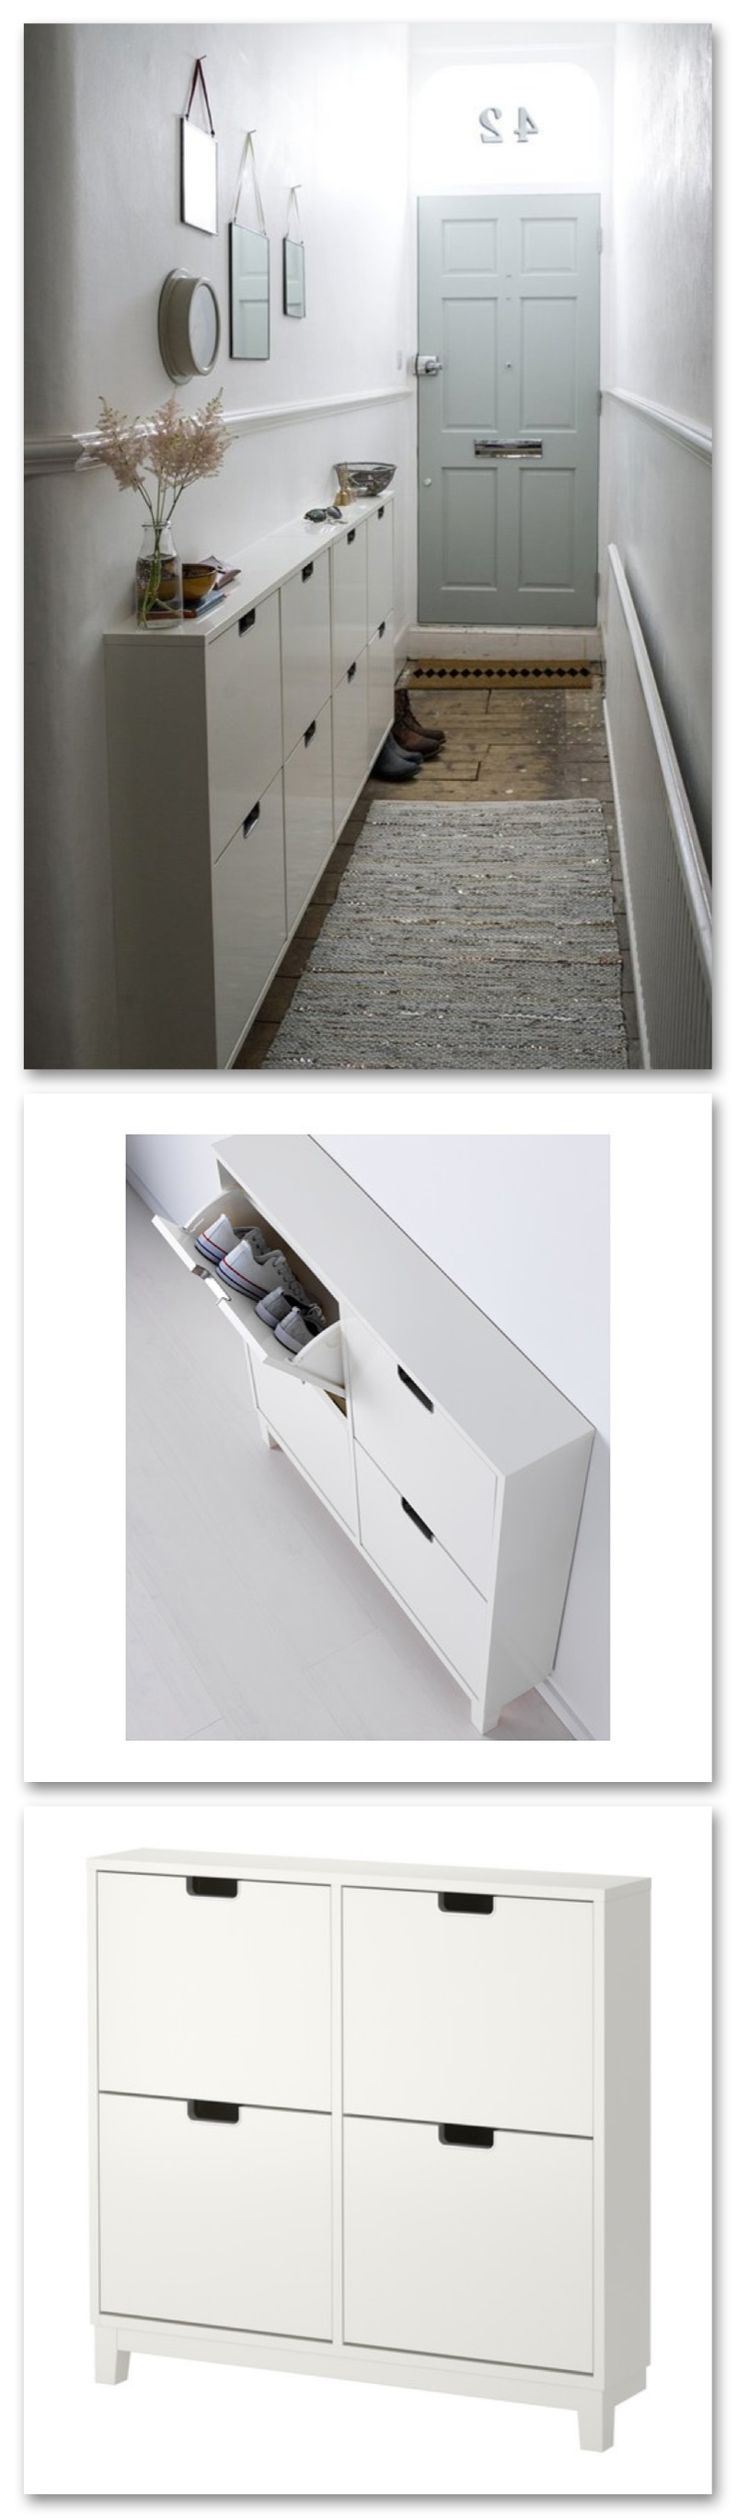 250 best Hallway Organization & Storage images on Pinterest | Ikea ...